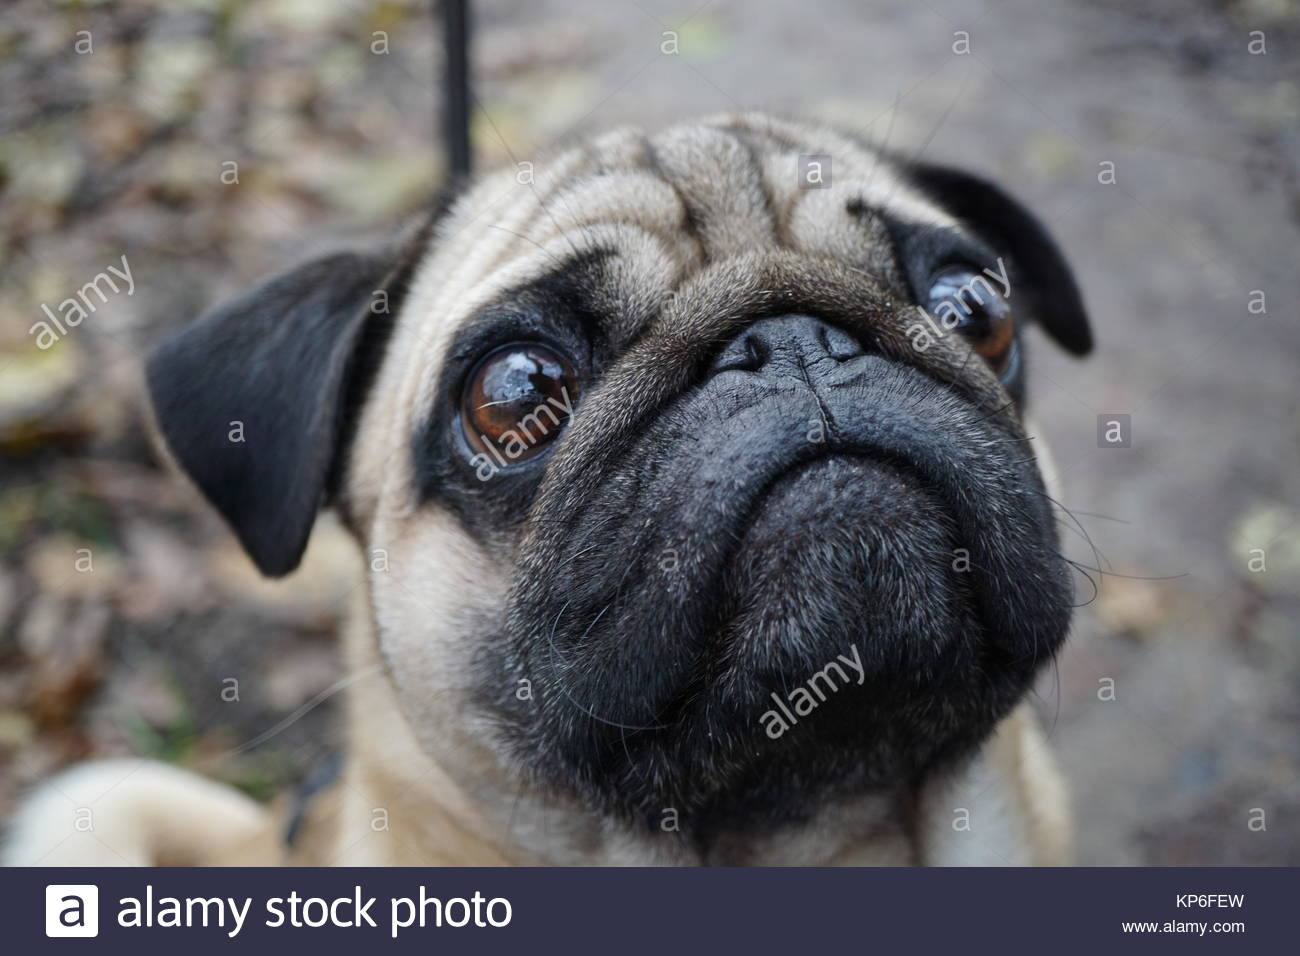 Pug portrait - Stock Image